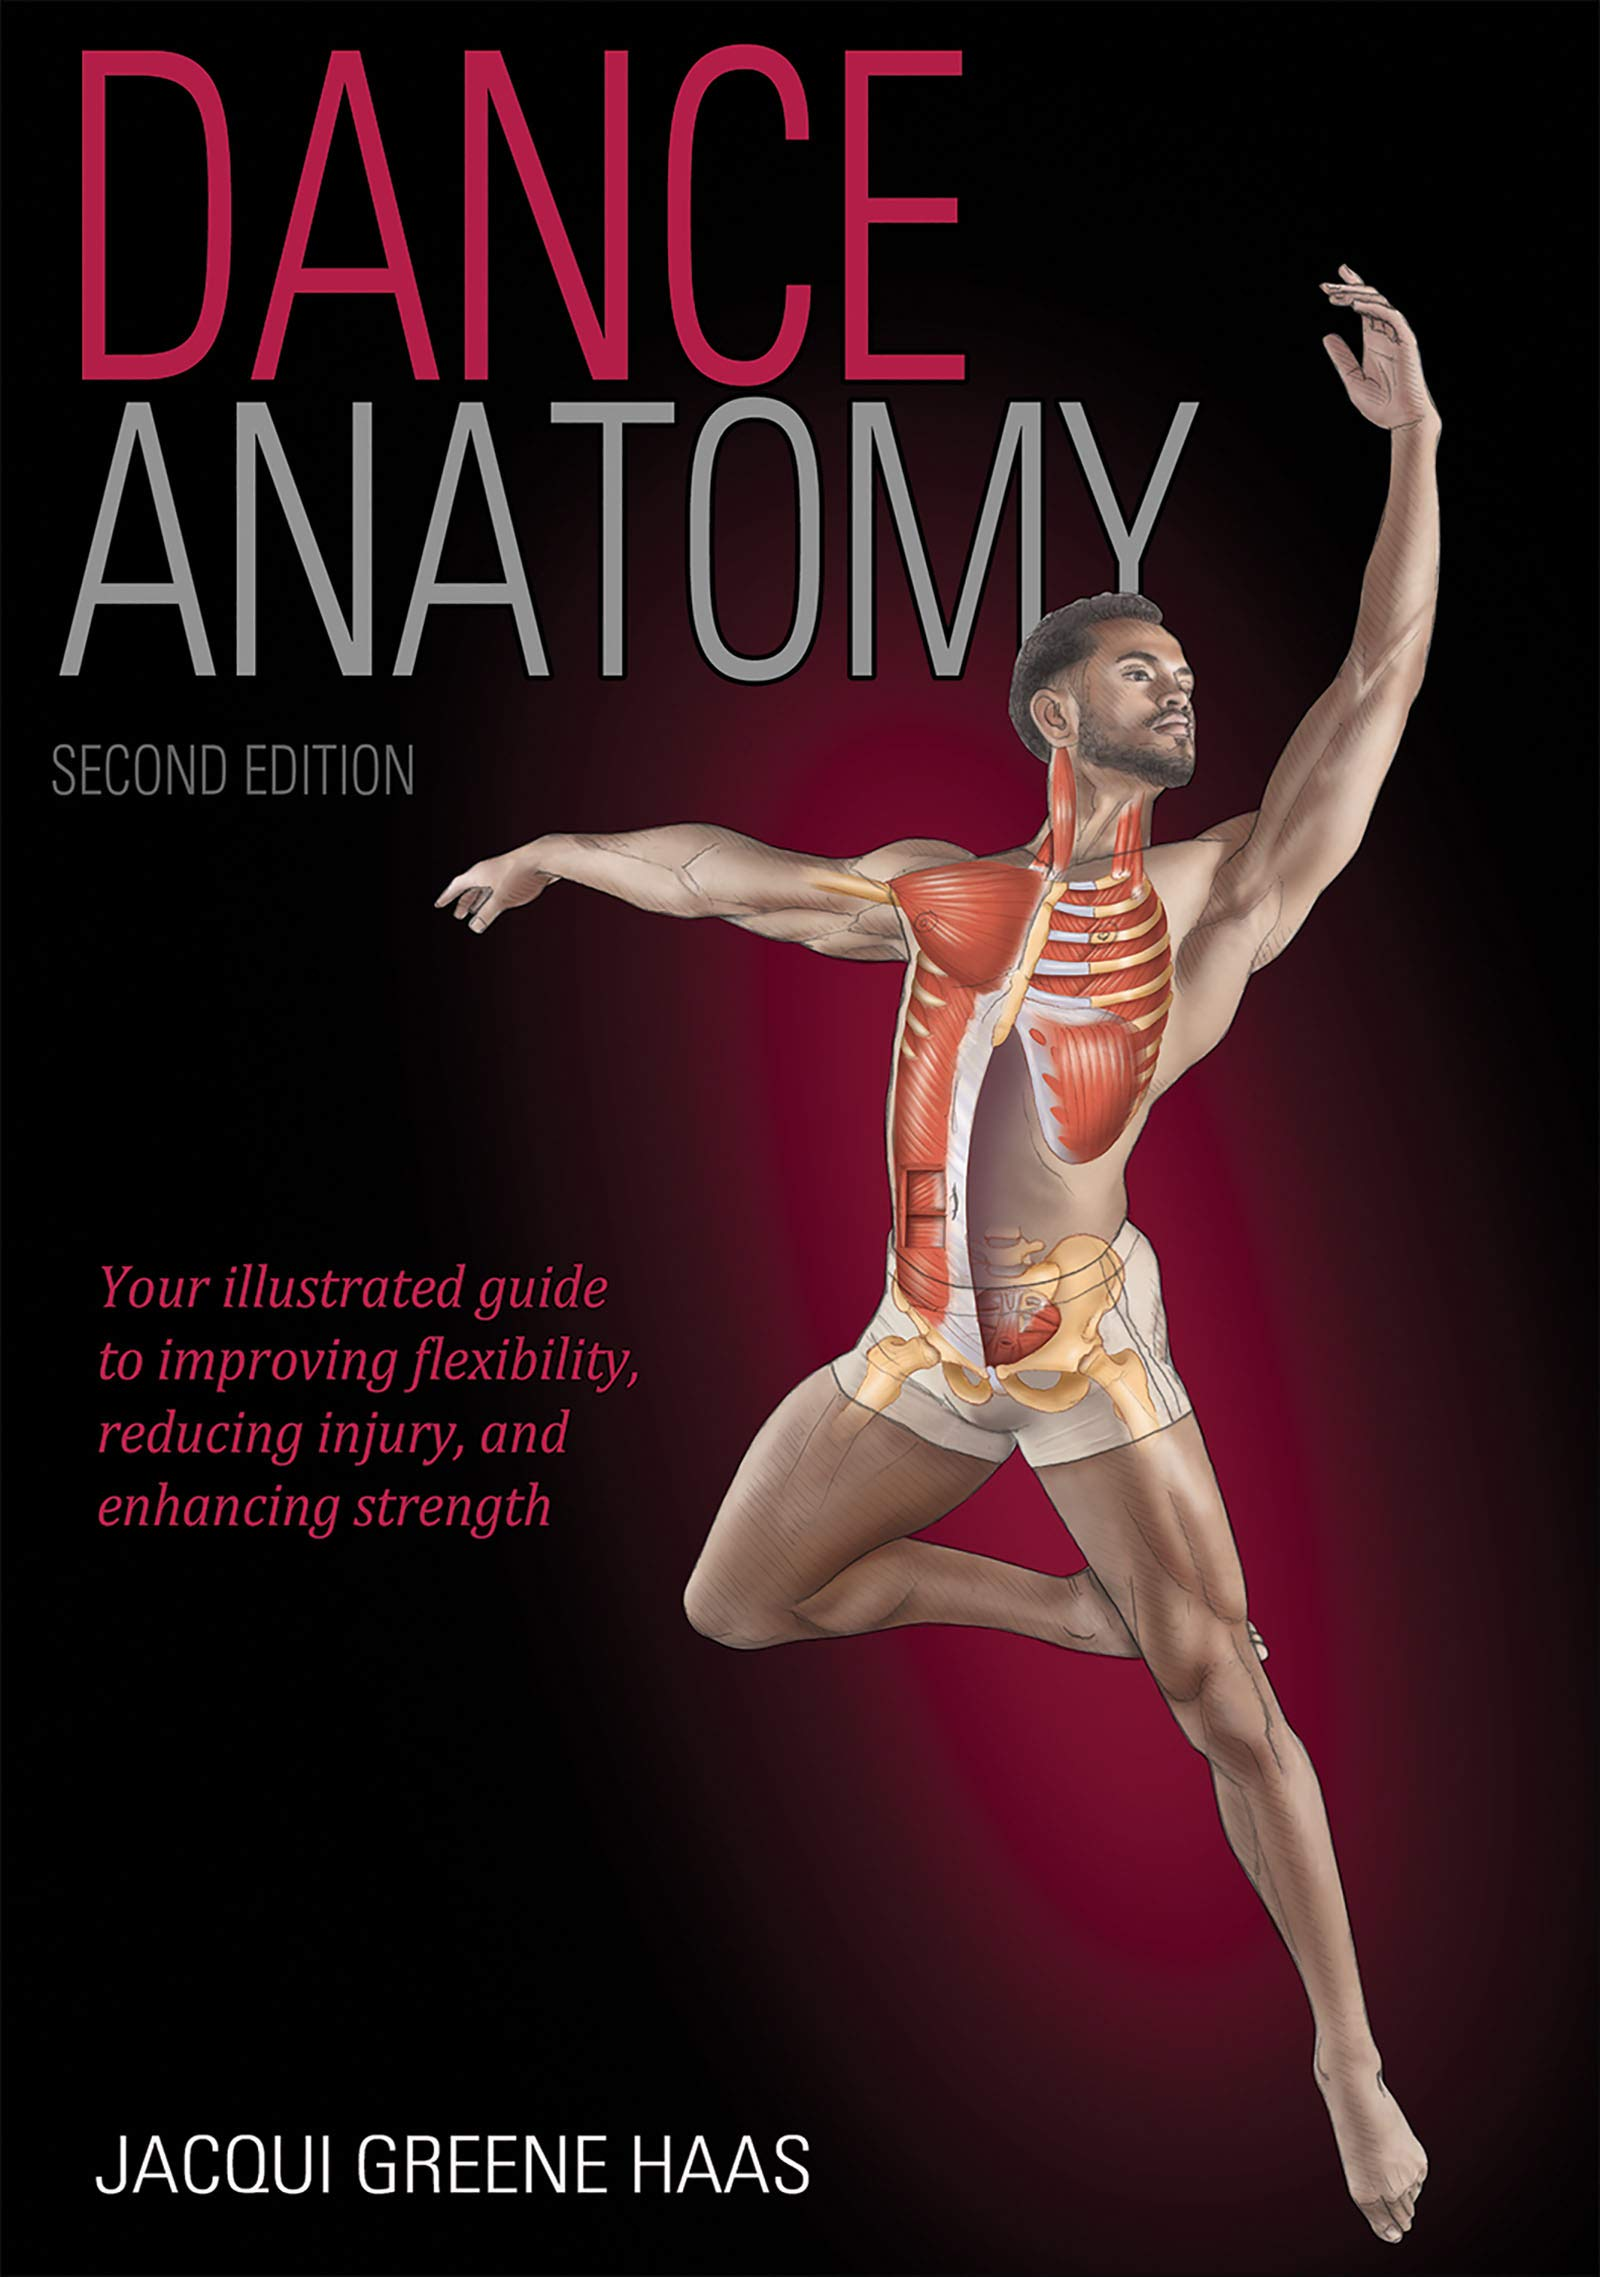 (2017) Featuring hundreds of full-color illustrations, Dance Anatomy presents more than 100 of the most effective dance, movement, and performance exercises, each designed to promote correct alignment, improved placement, proper breathing, and prevention of common injuries. -